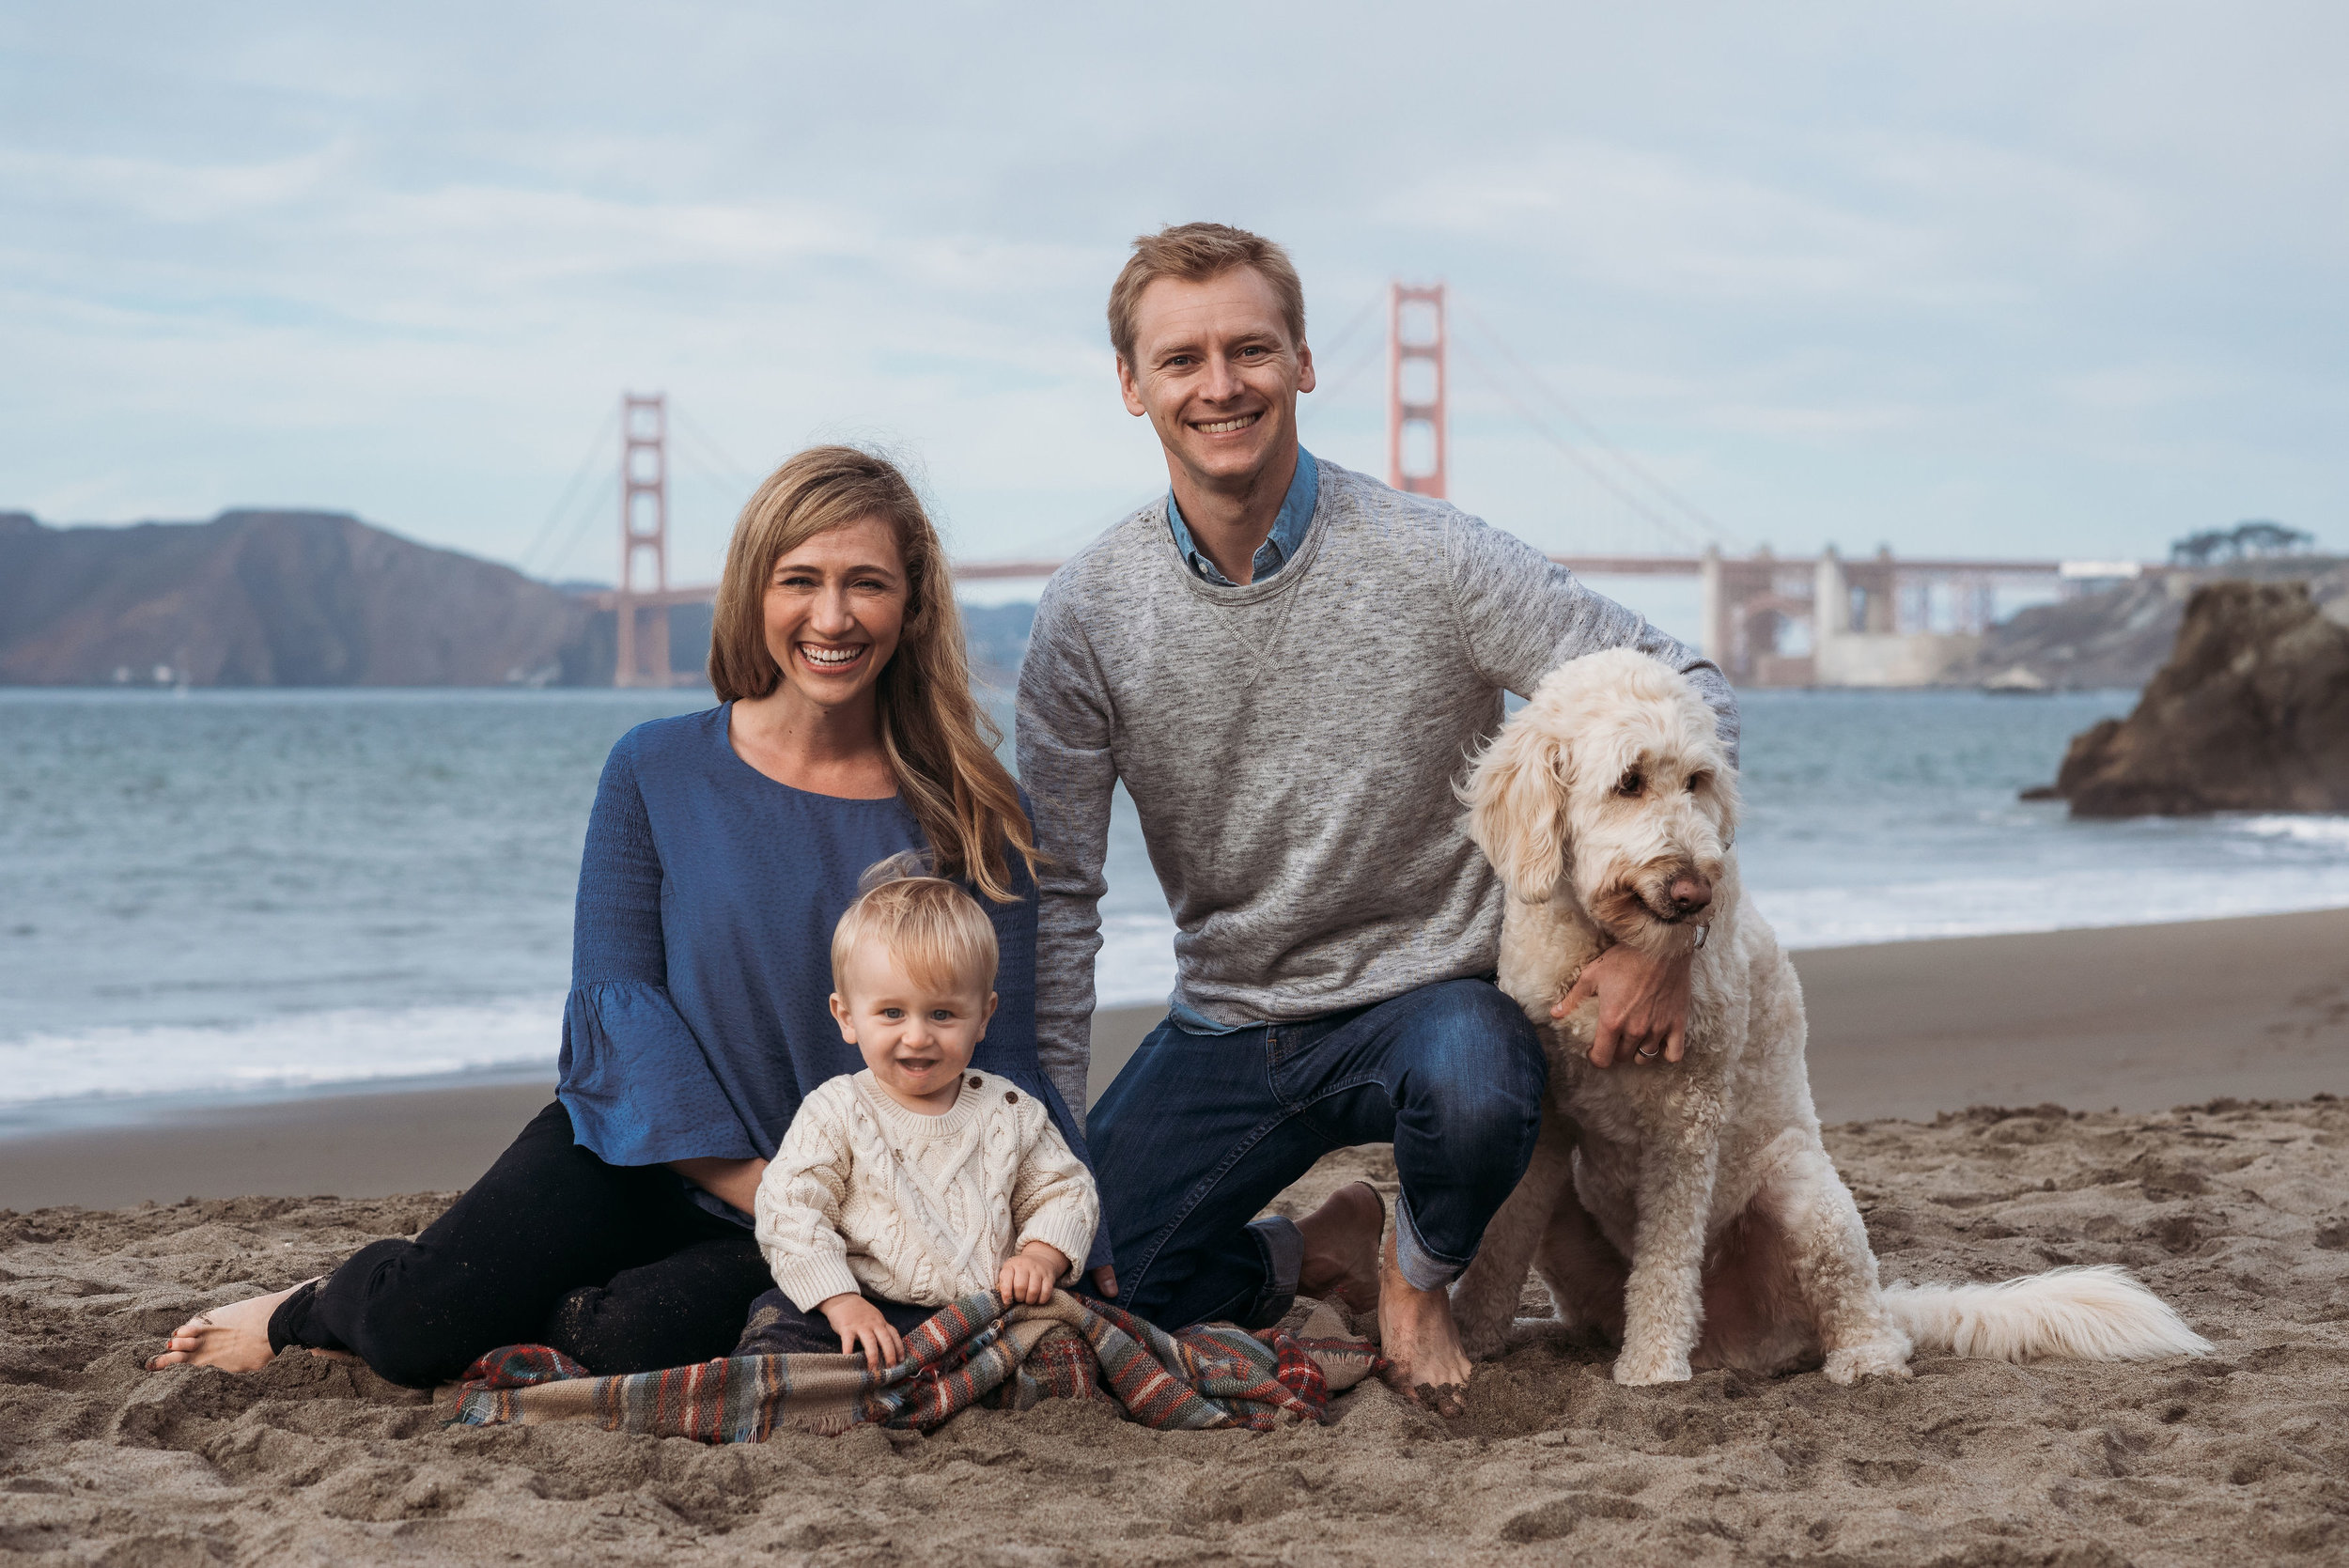 I love not only incorporating the four-legged family member, but also keeping the style here timeless! With their color palette and outfit choices, this is an image that won't go out of style.